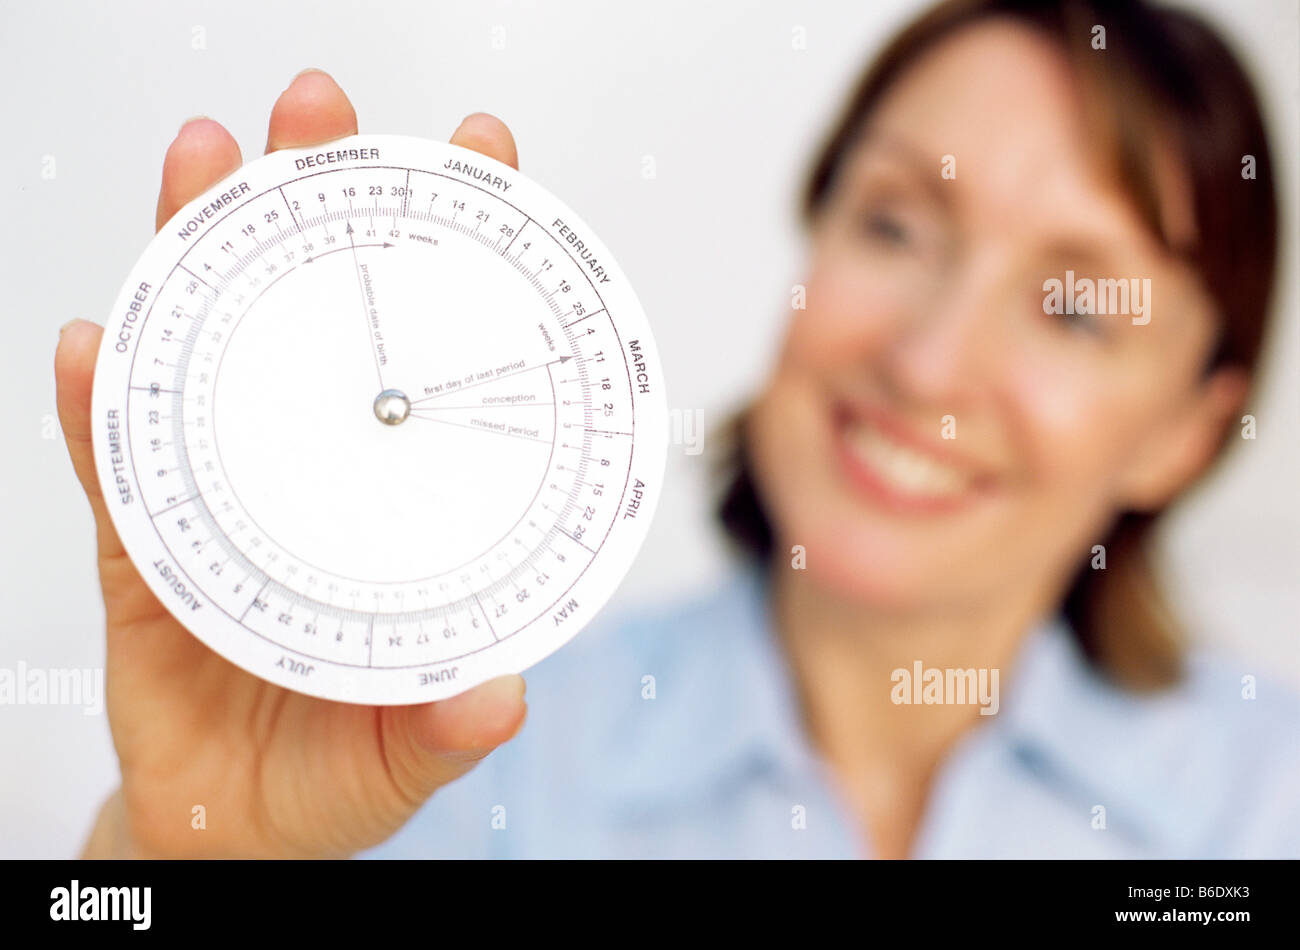 Gestation calculator. This is a device for accurately determining the expected date of delivery for pregnant women. - Stock Image